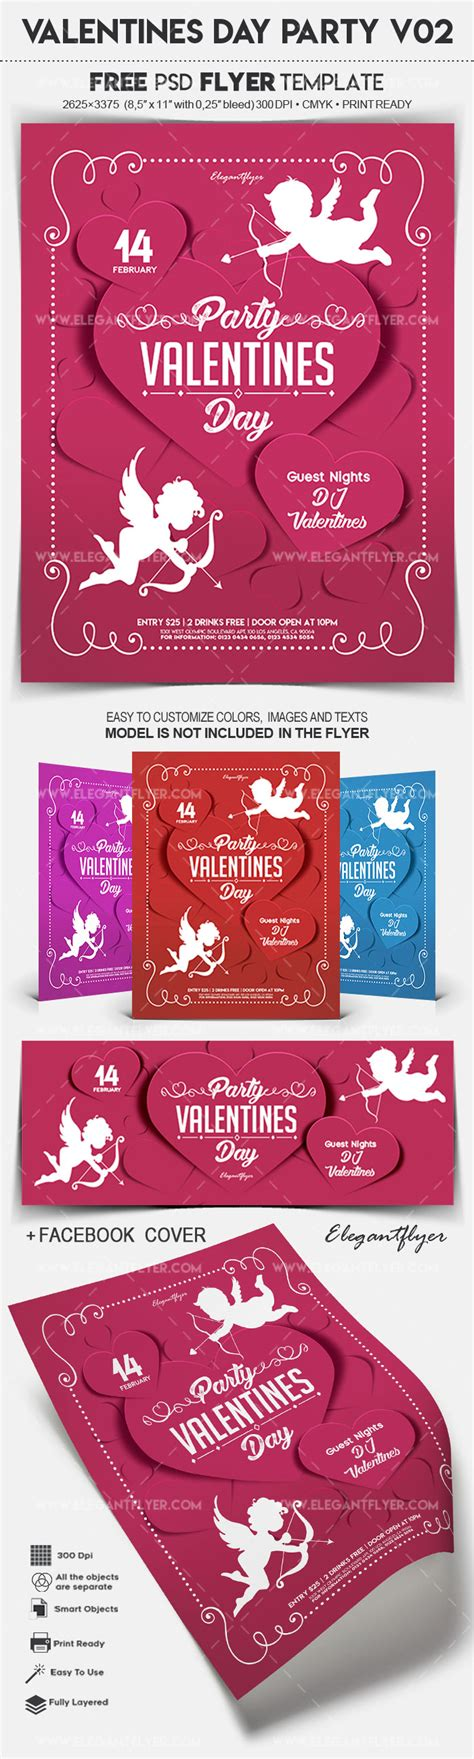 valentines day card template psd valentines day v02 free flyer psd template by